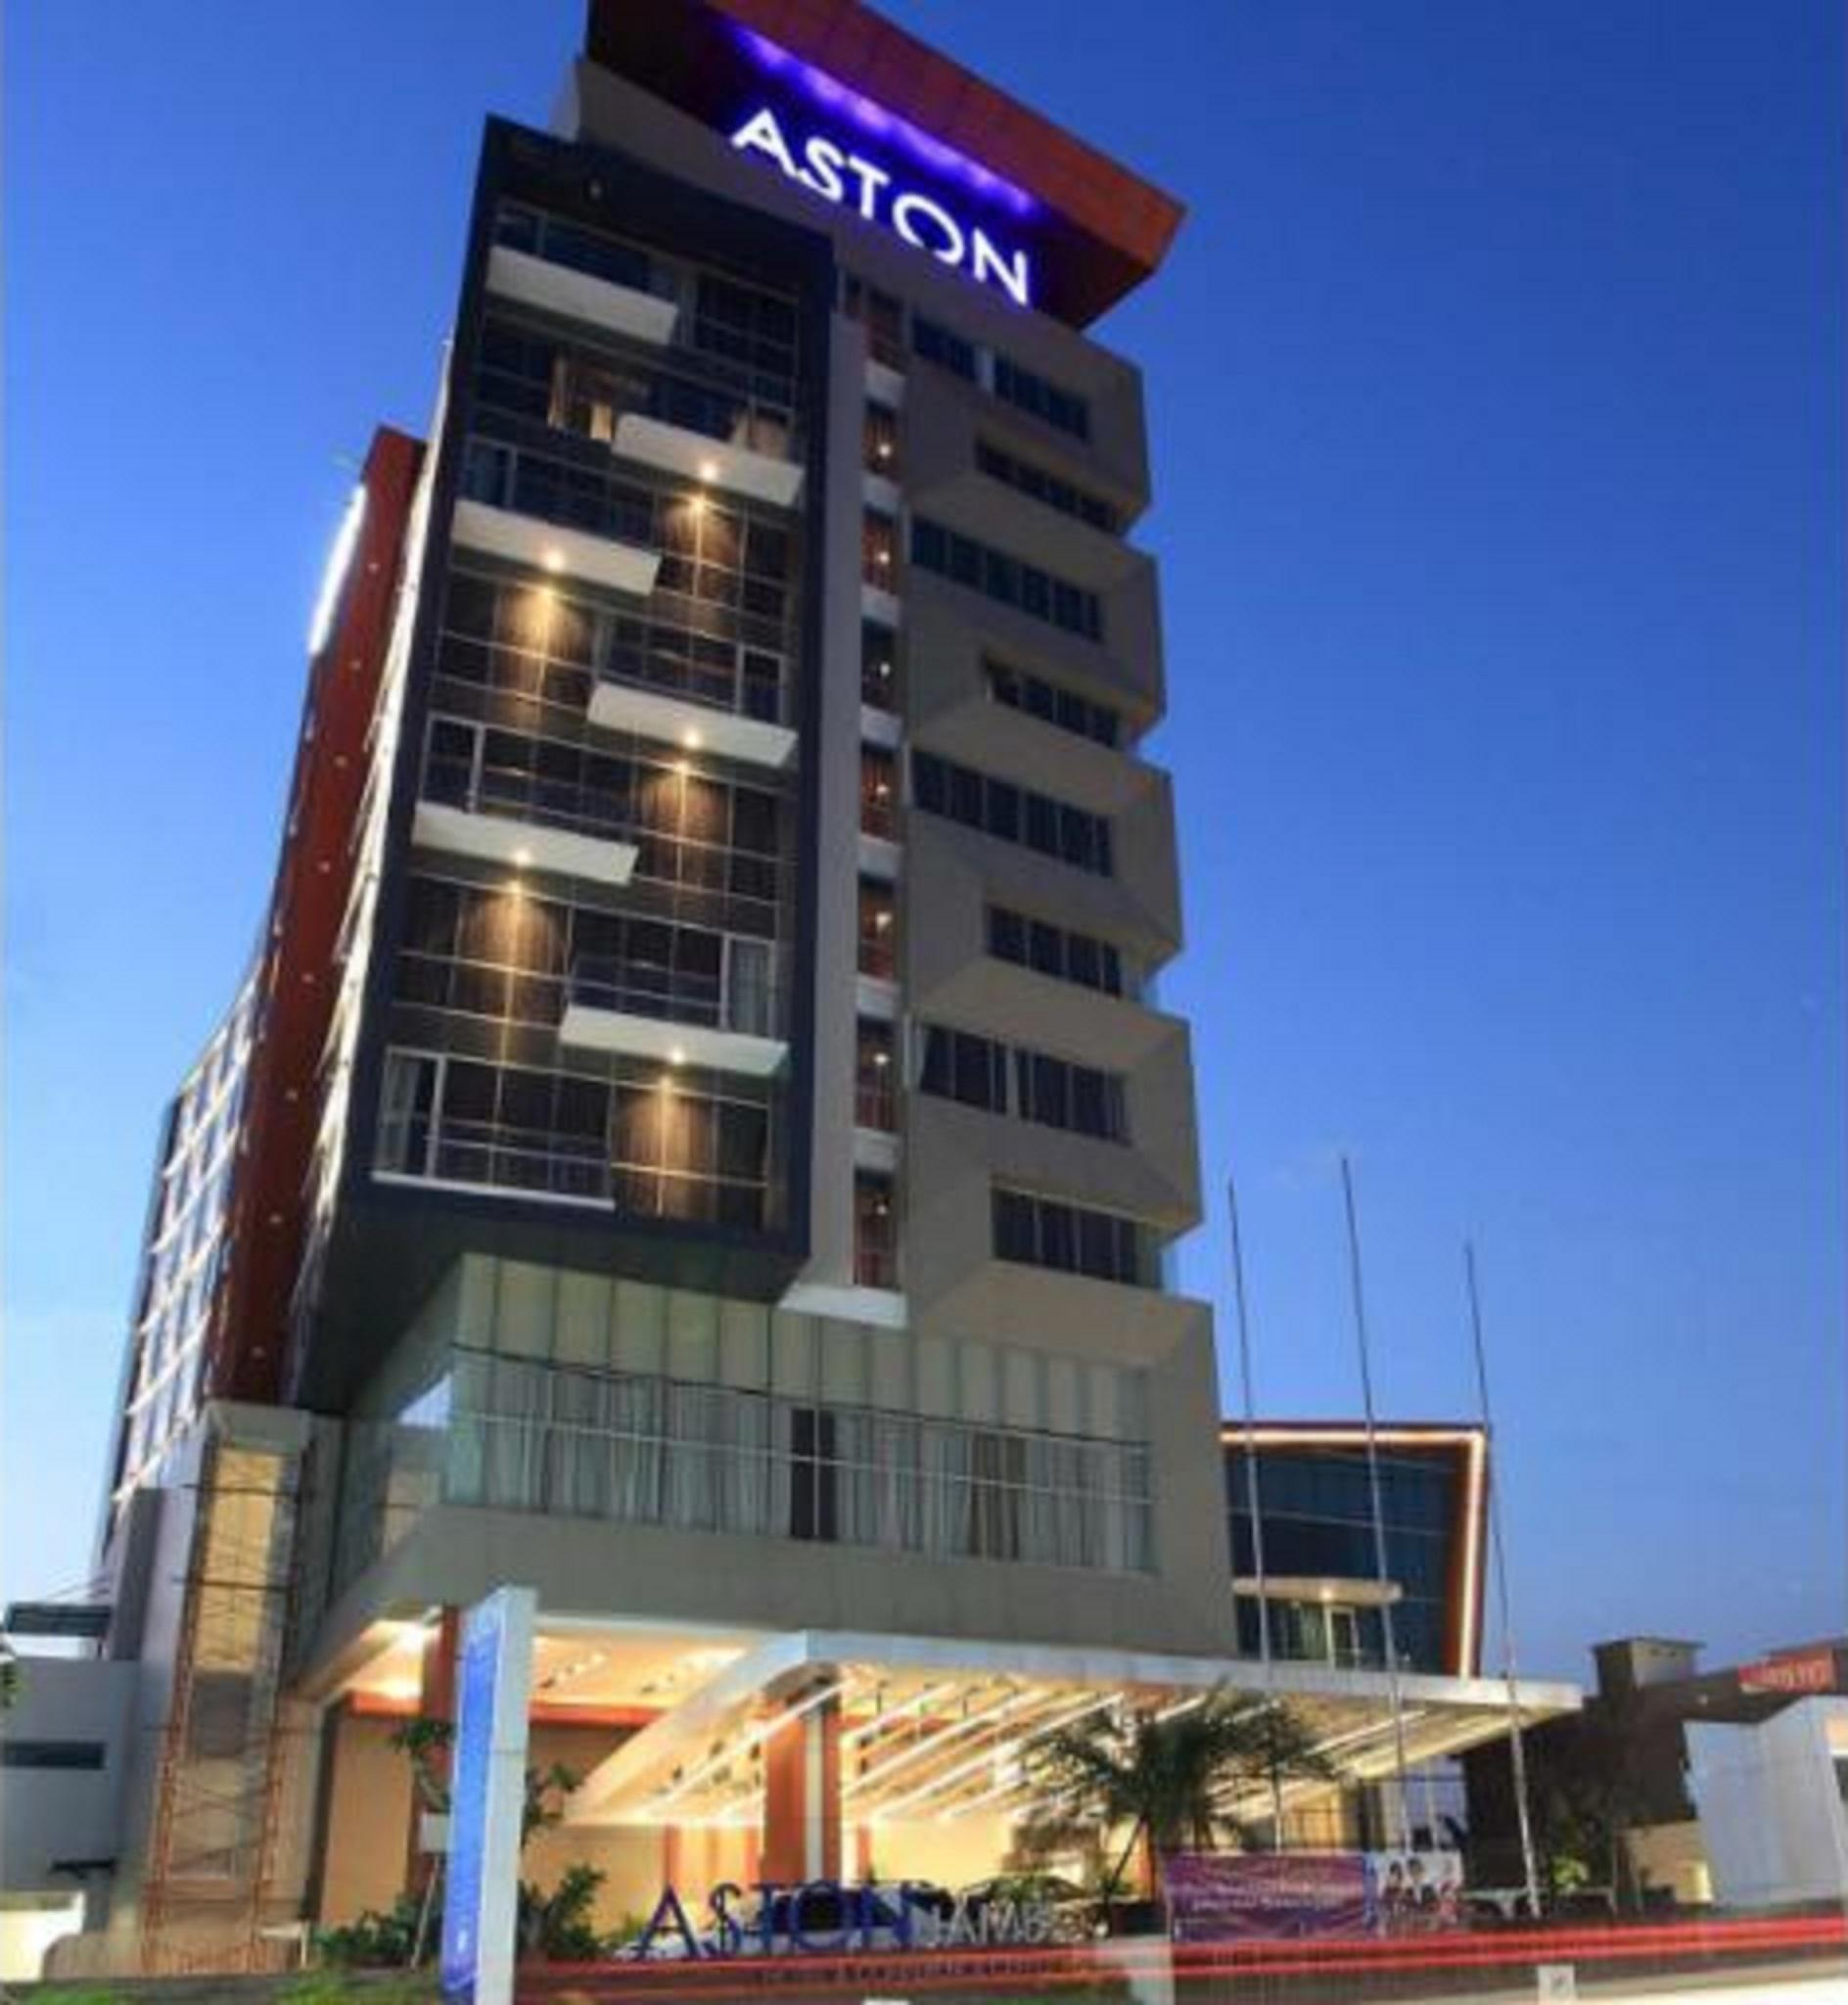 Aston Jambi Hotel And Conference Center, Jambi